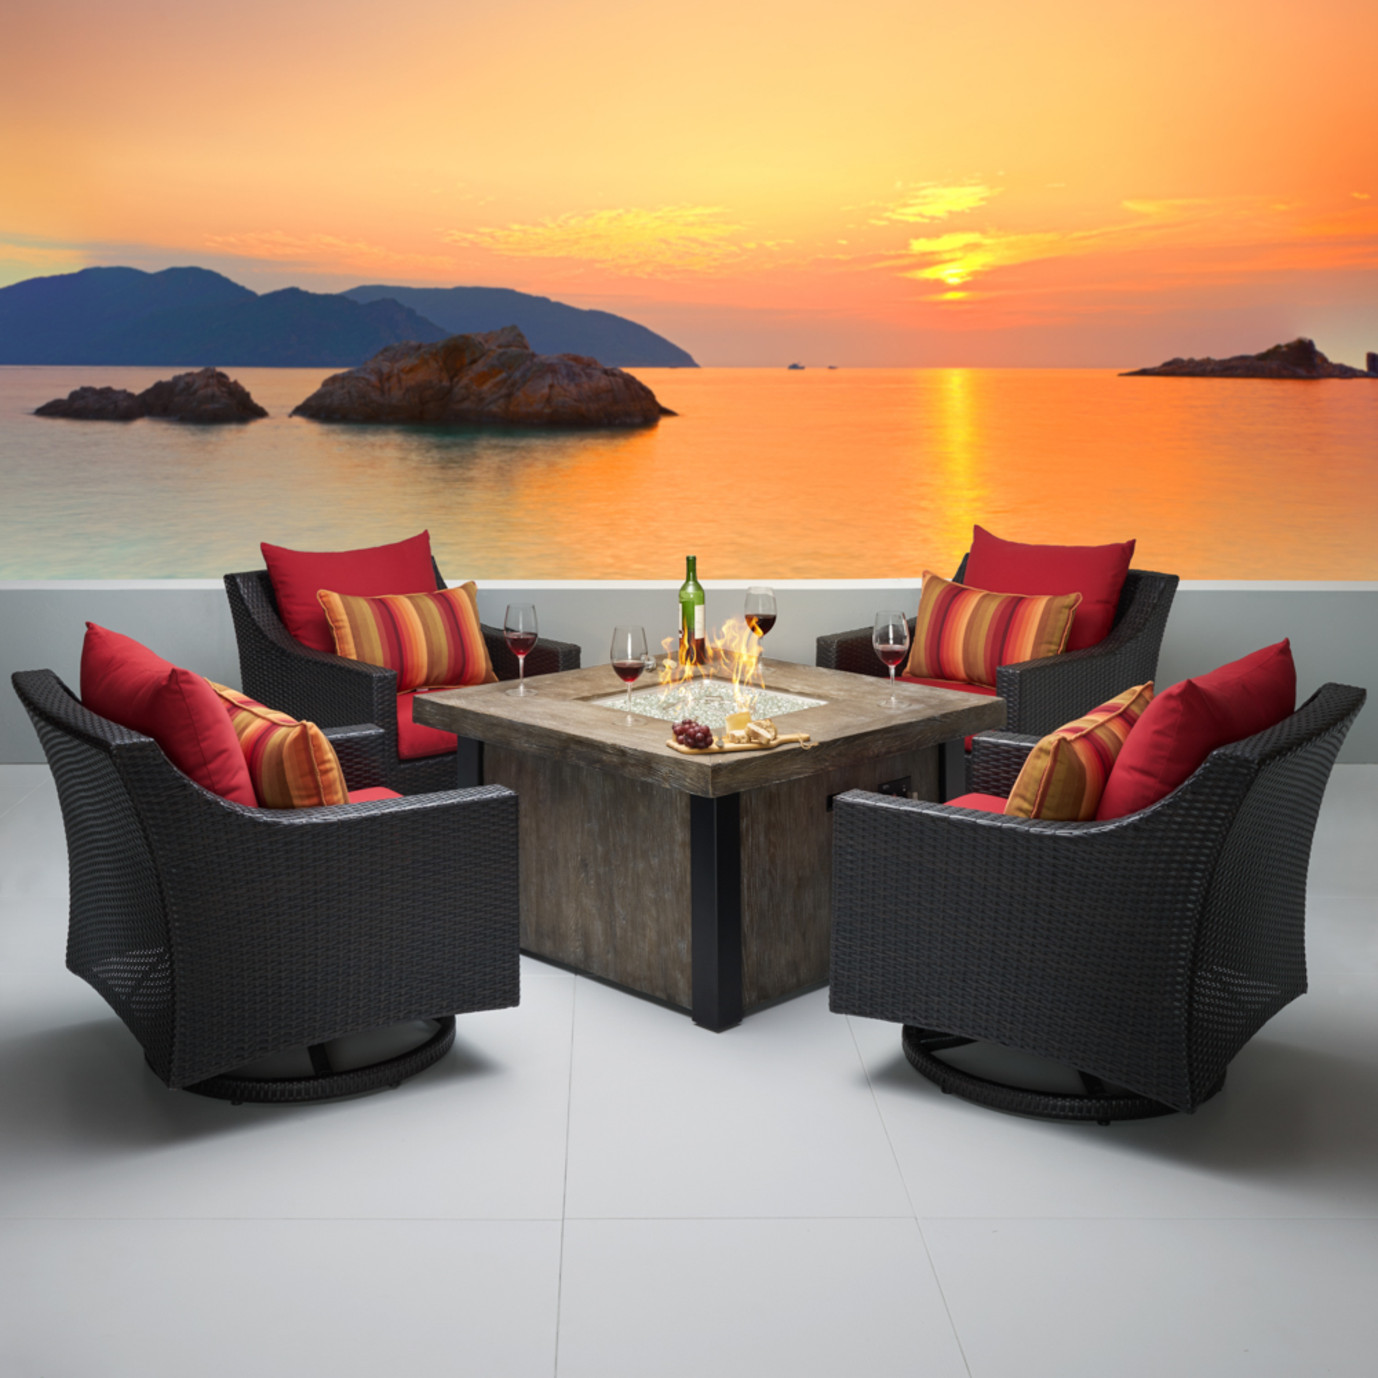 Deco™ 5 Piece Motion Fire Chat Set - Sunset Red